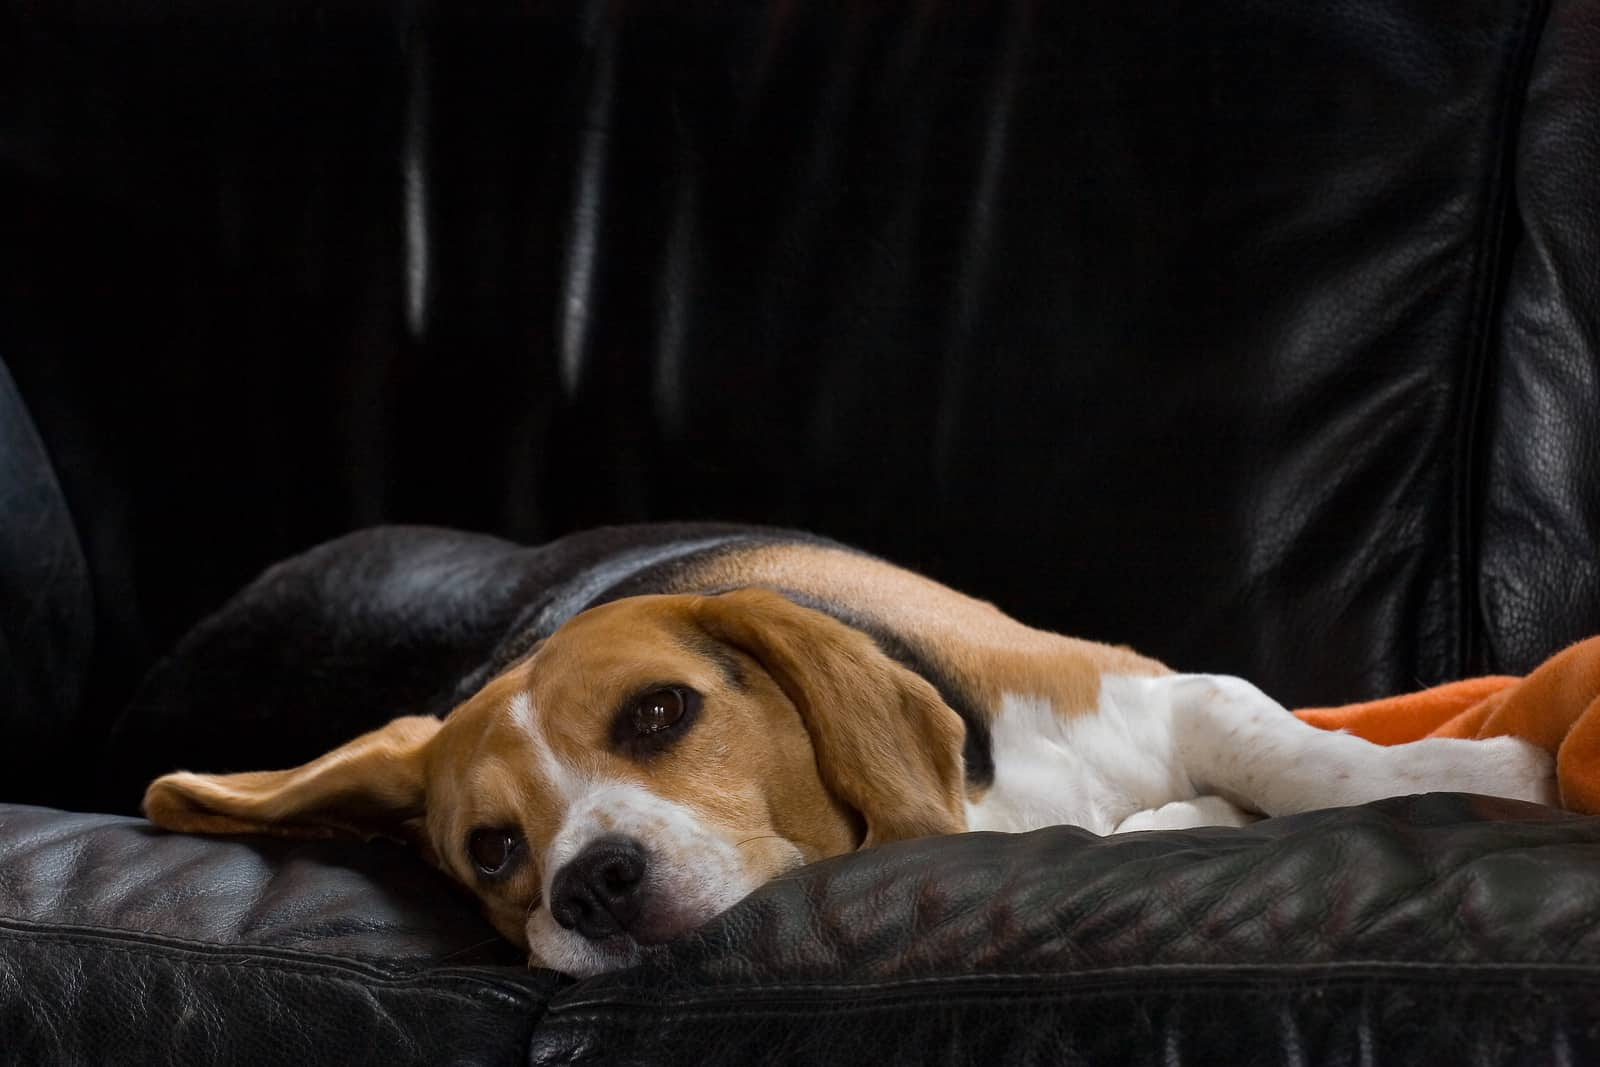 Female beagle resting on a black leather sofa.